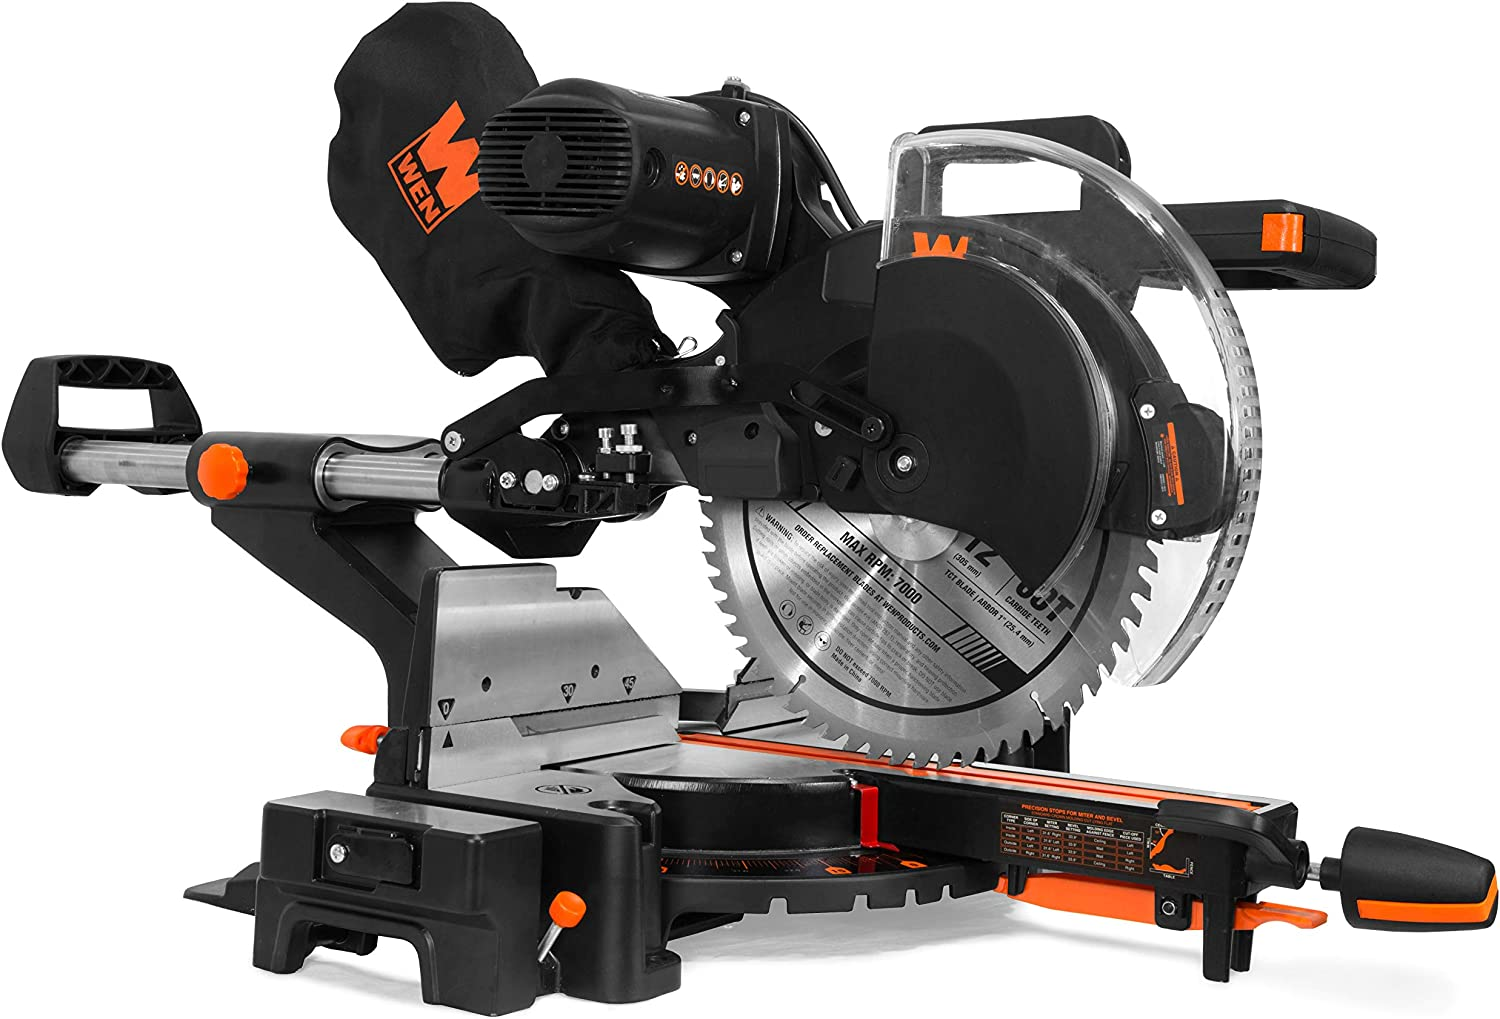 WEN MM1214 Dual-Bevel Sliding Compound Miter Saw